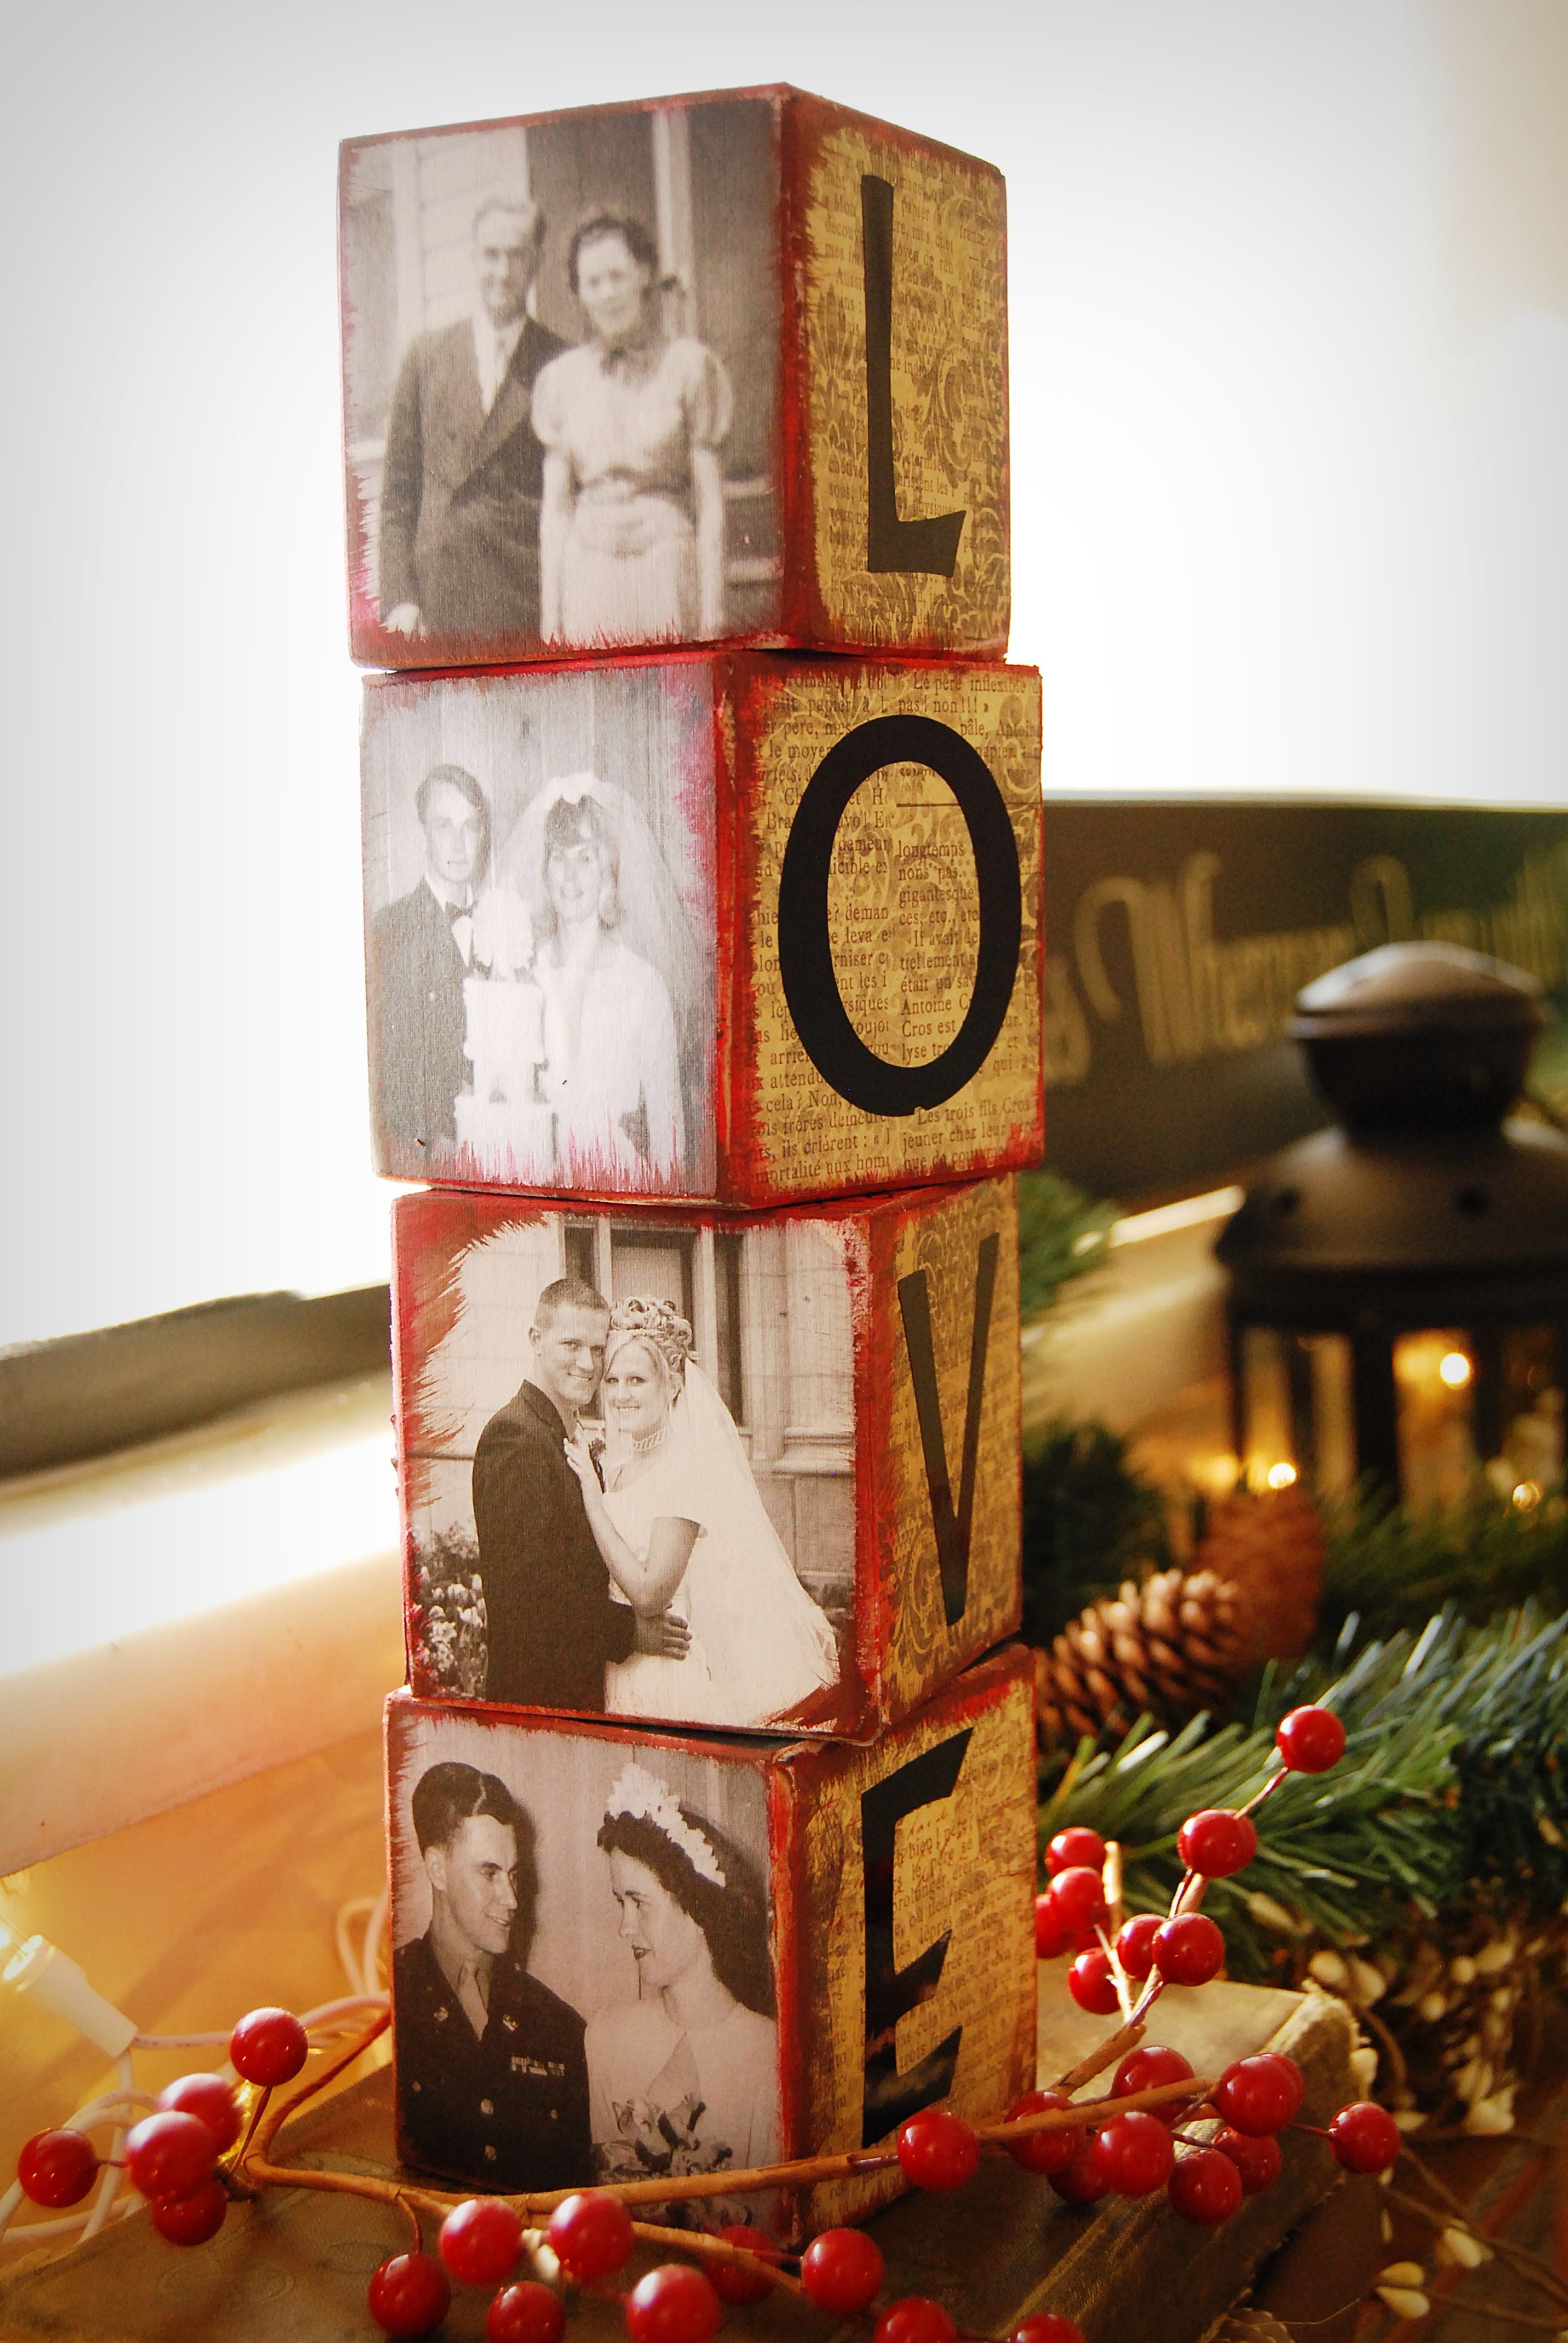 Wedding anniversary decoration ideas at home  Love BlocksFilled with photos of Loved ones on wedding days